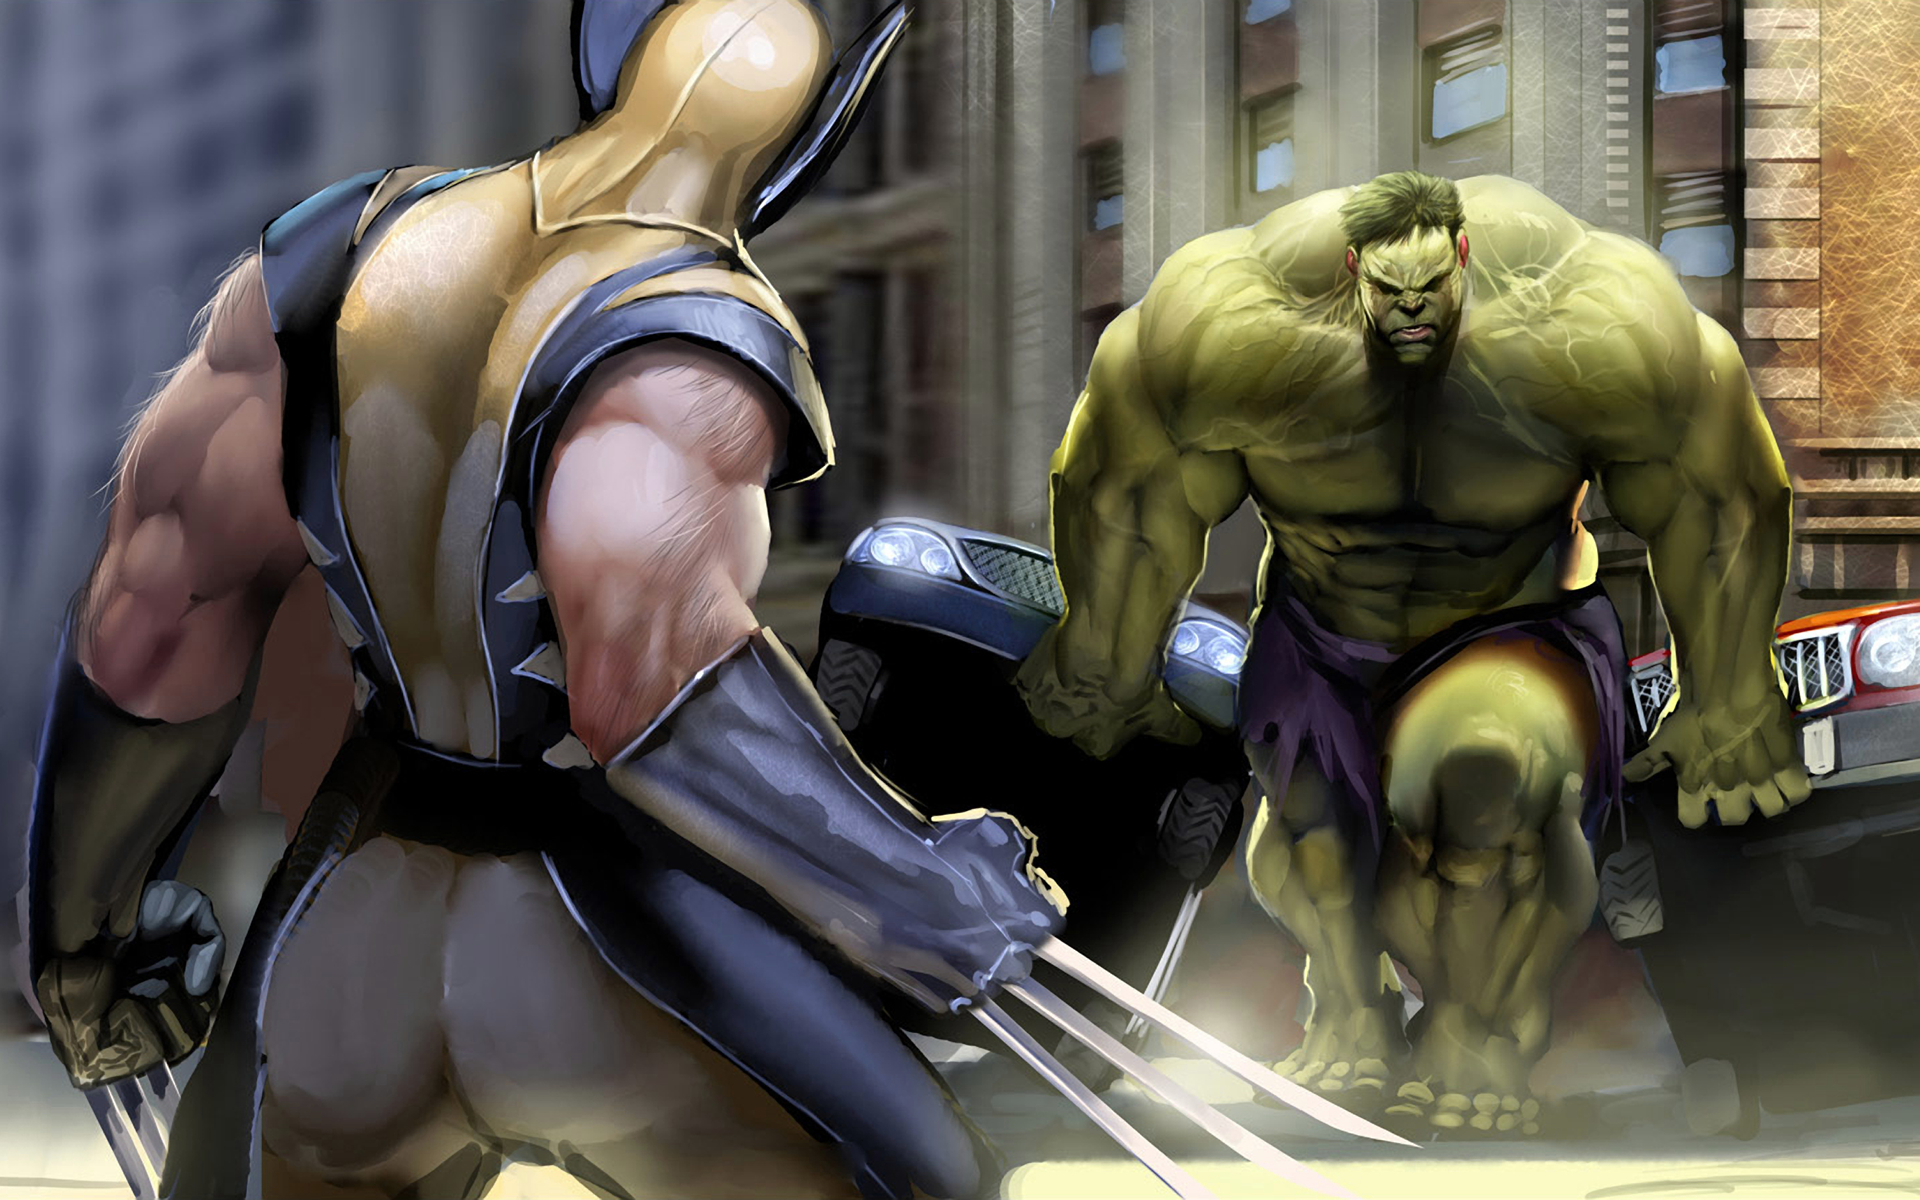 Hulk comic Character wolverine HD Wallpaper